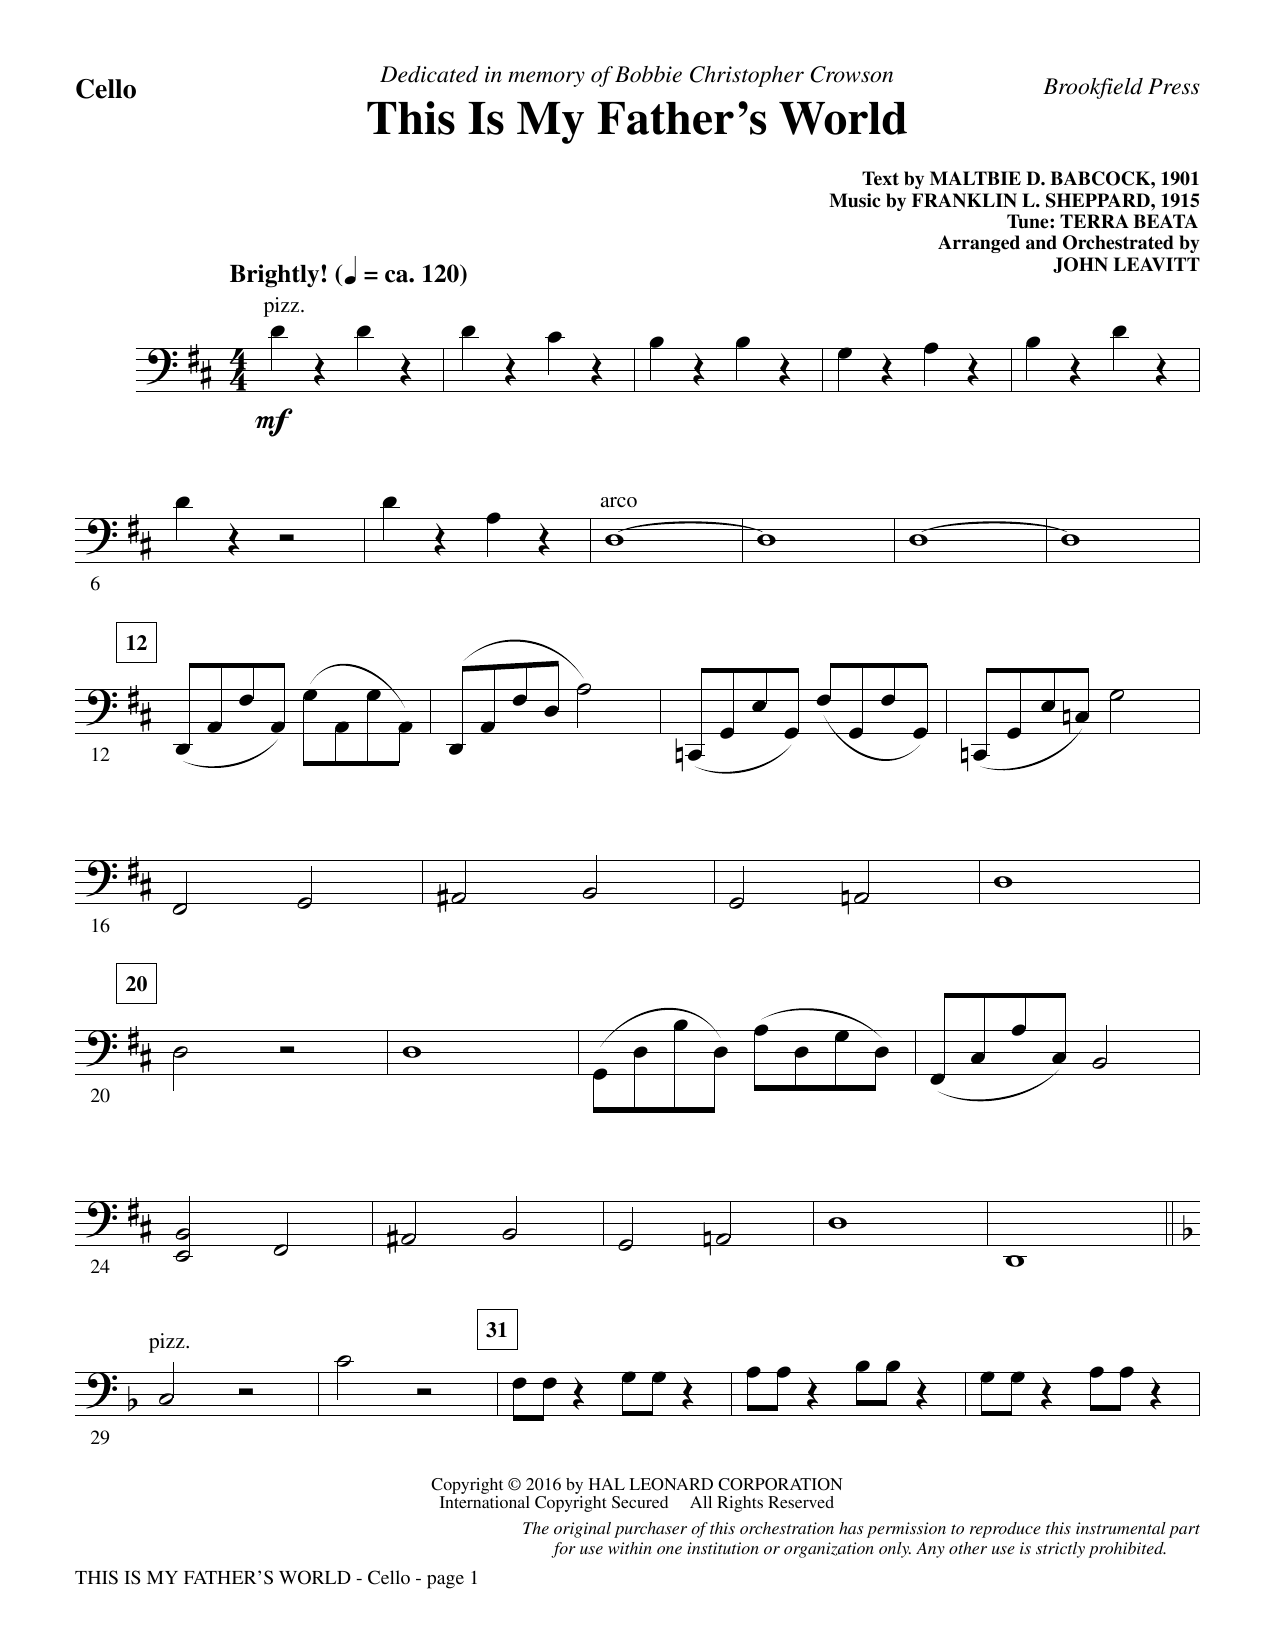 This Is My Father's World - Cello Sheet Music